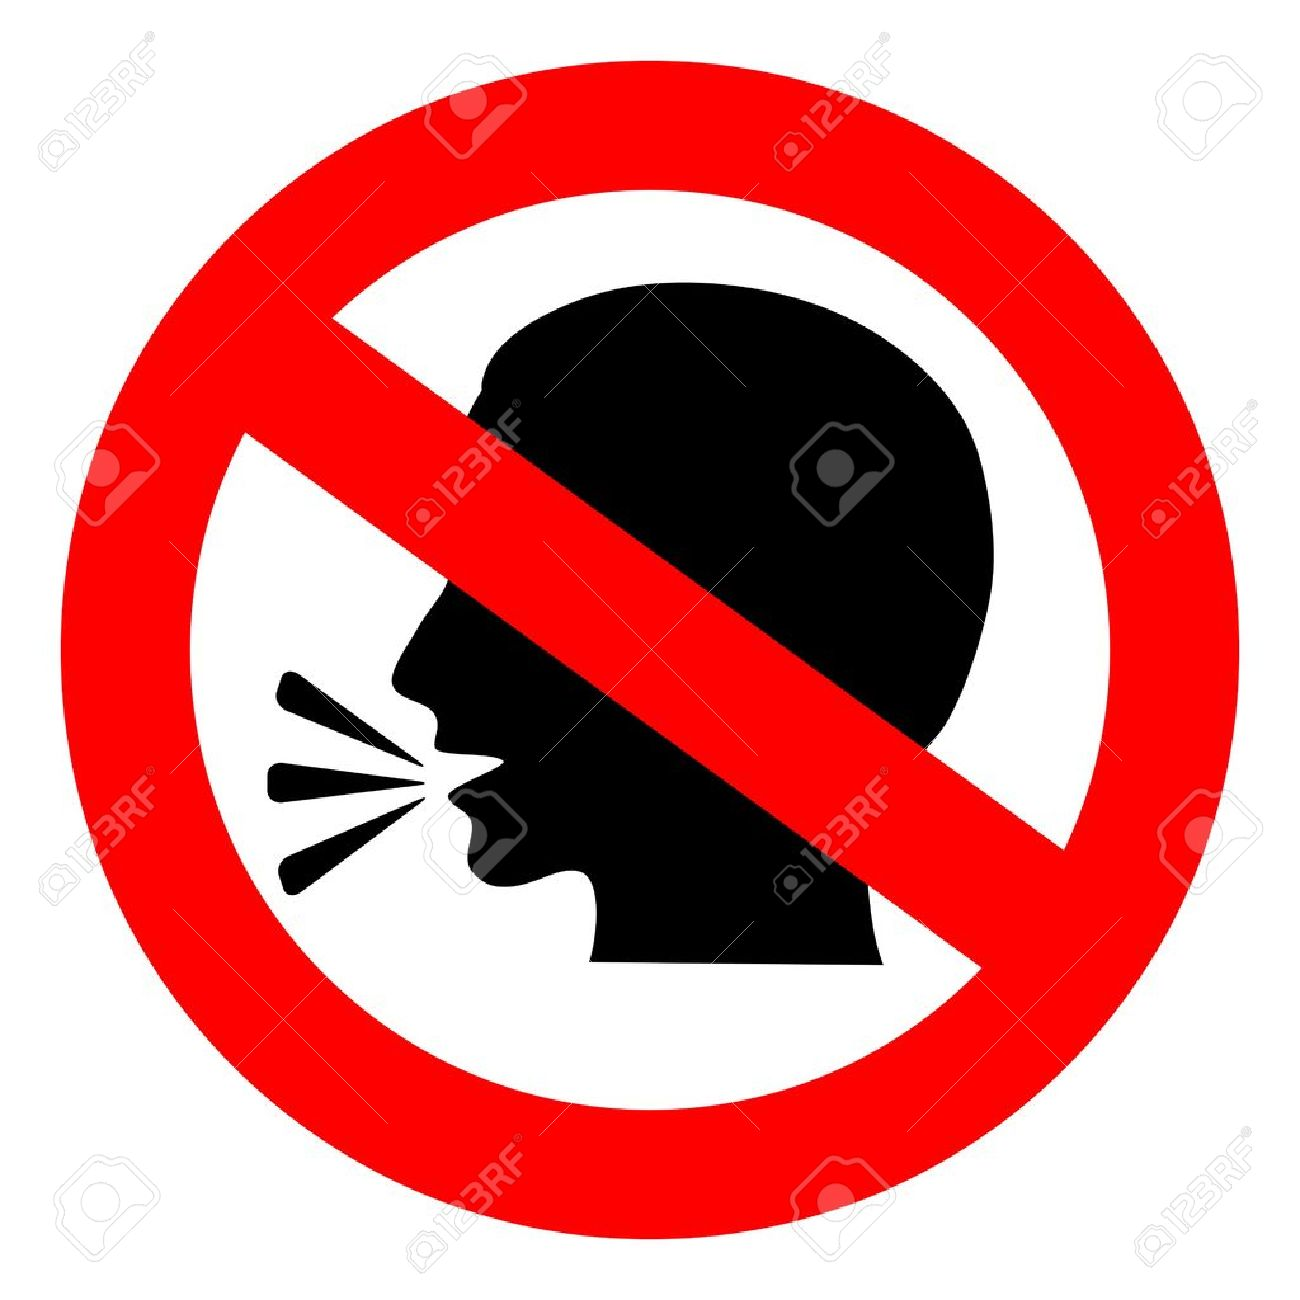 vector no talking sign royalty free cliparts vectors and stock rh 123rf com No Talking Sign No Talking Sign